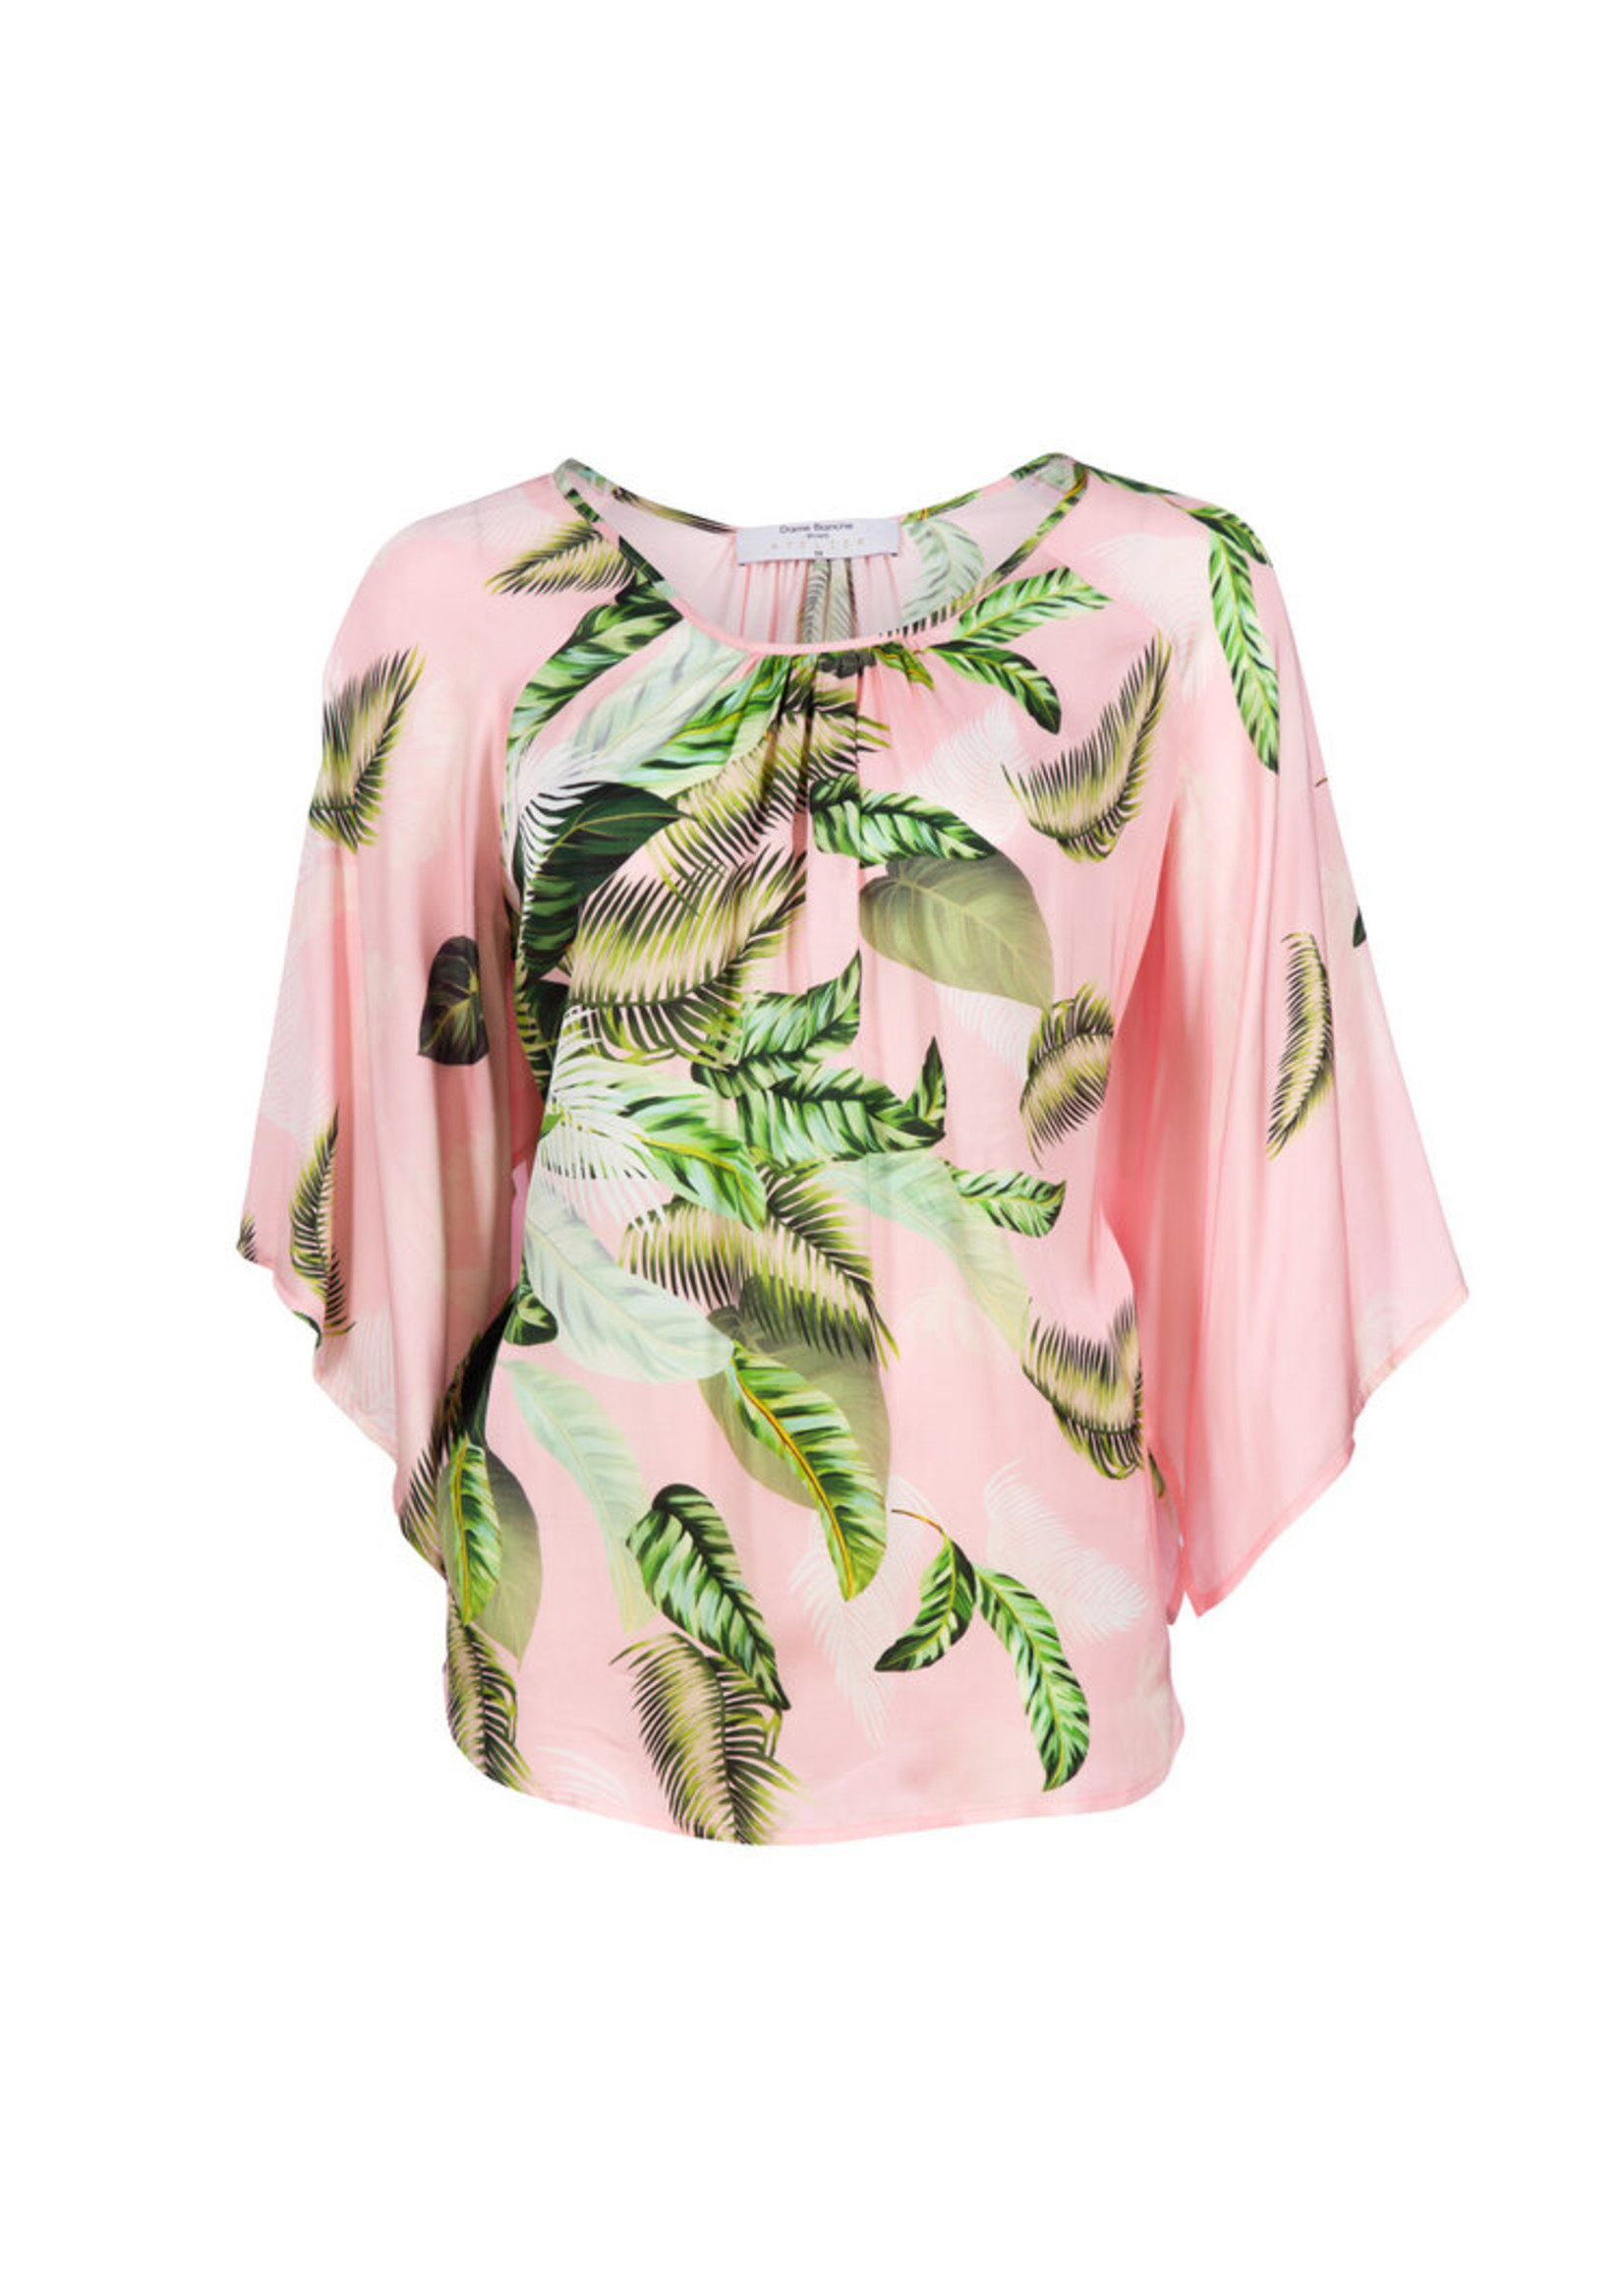 Dame Blanche Blouse Athens fall